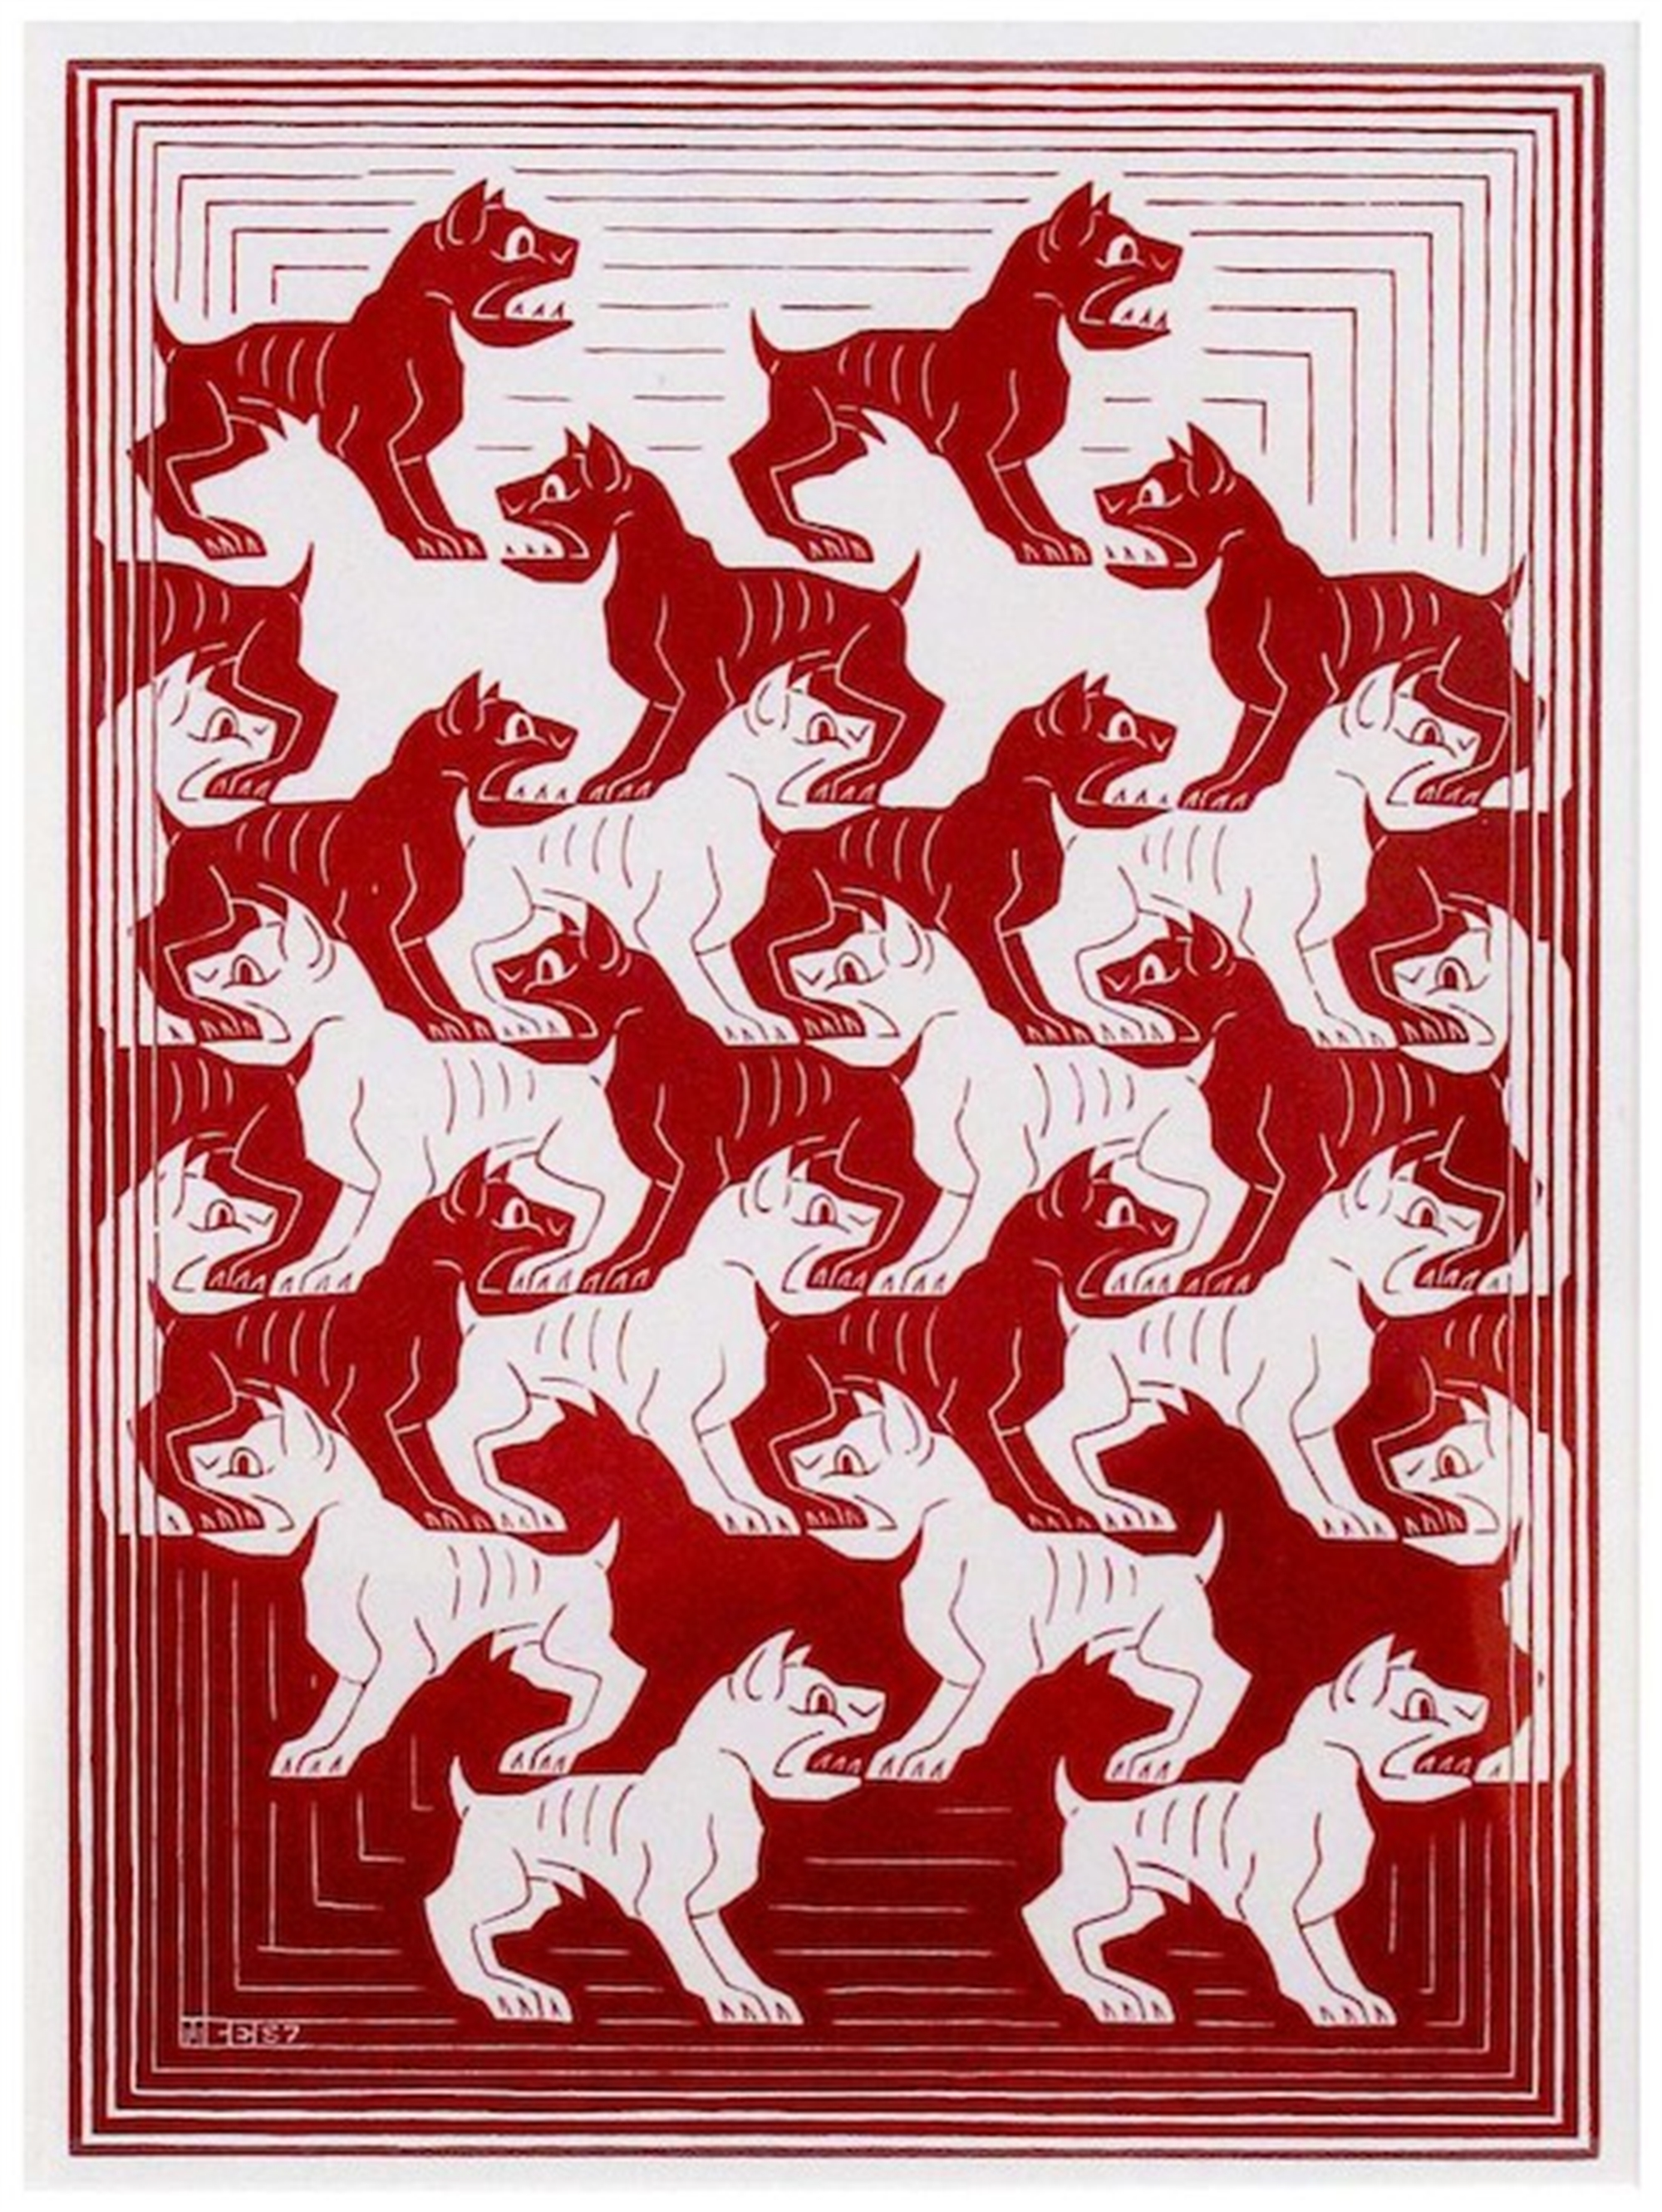 Regular Division of the Plane IV (Red) by M.C. Escher